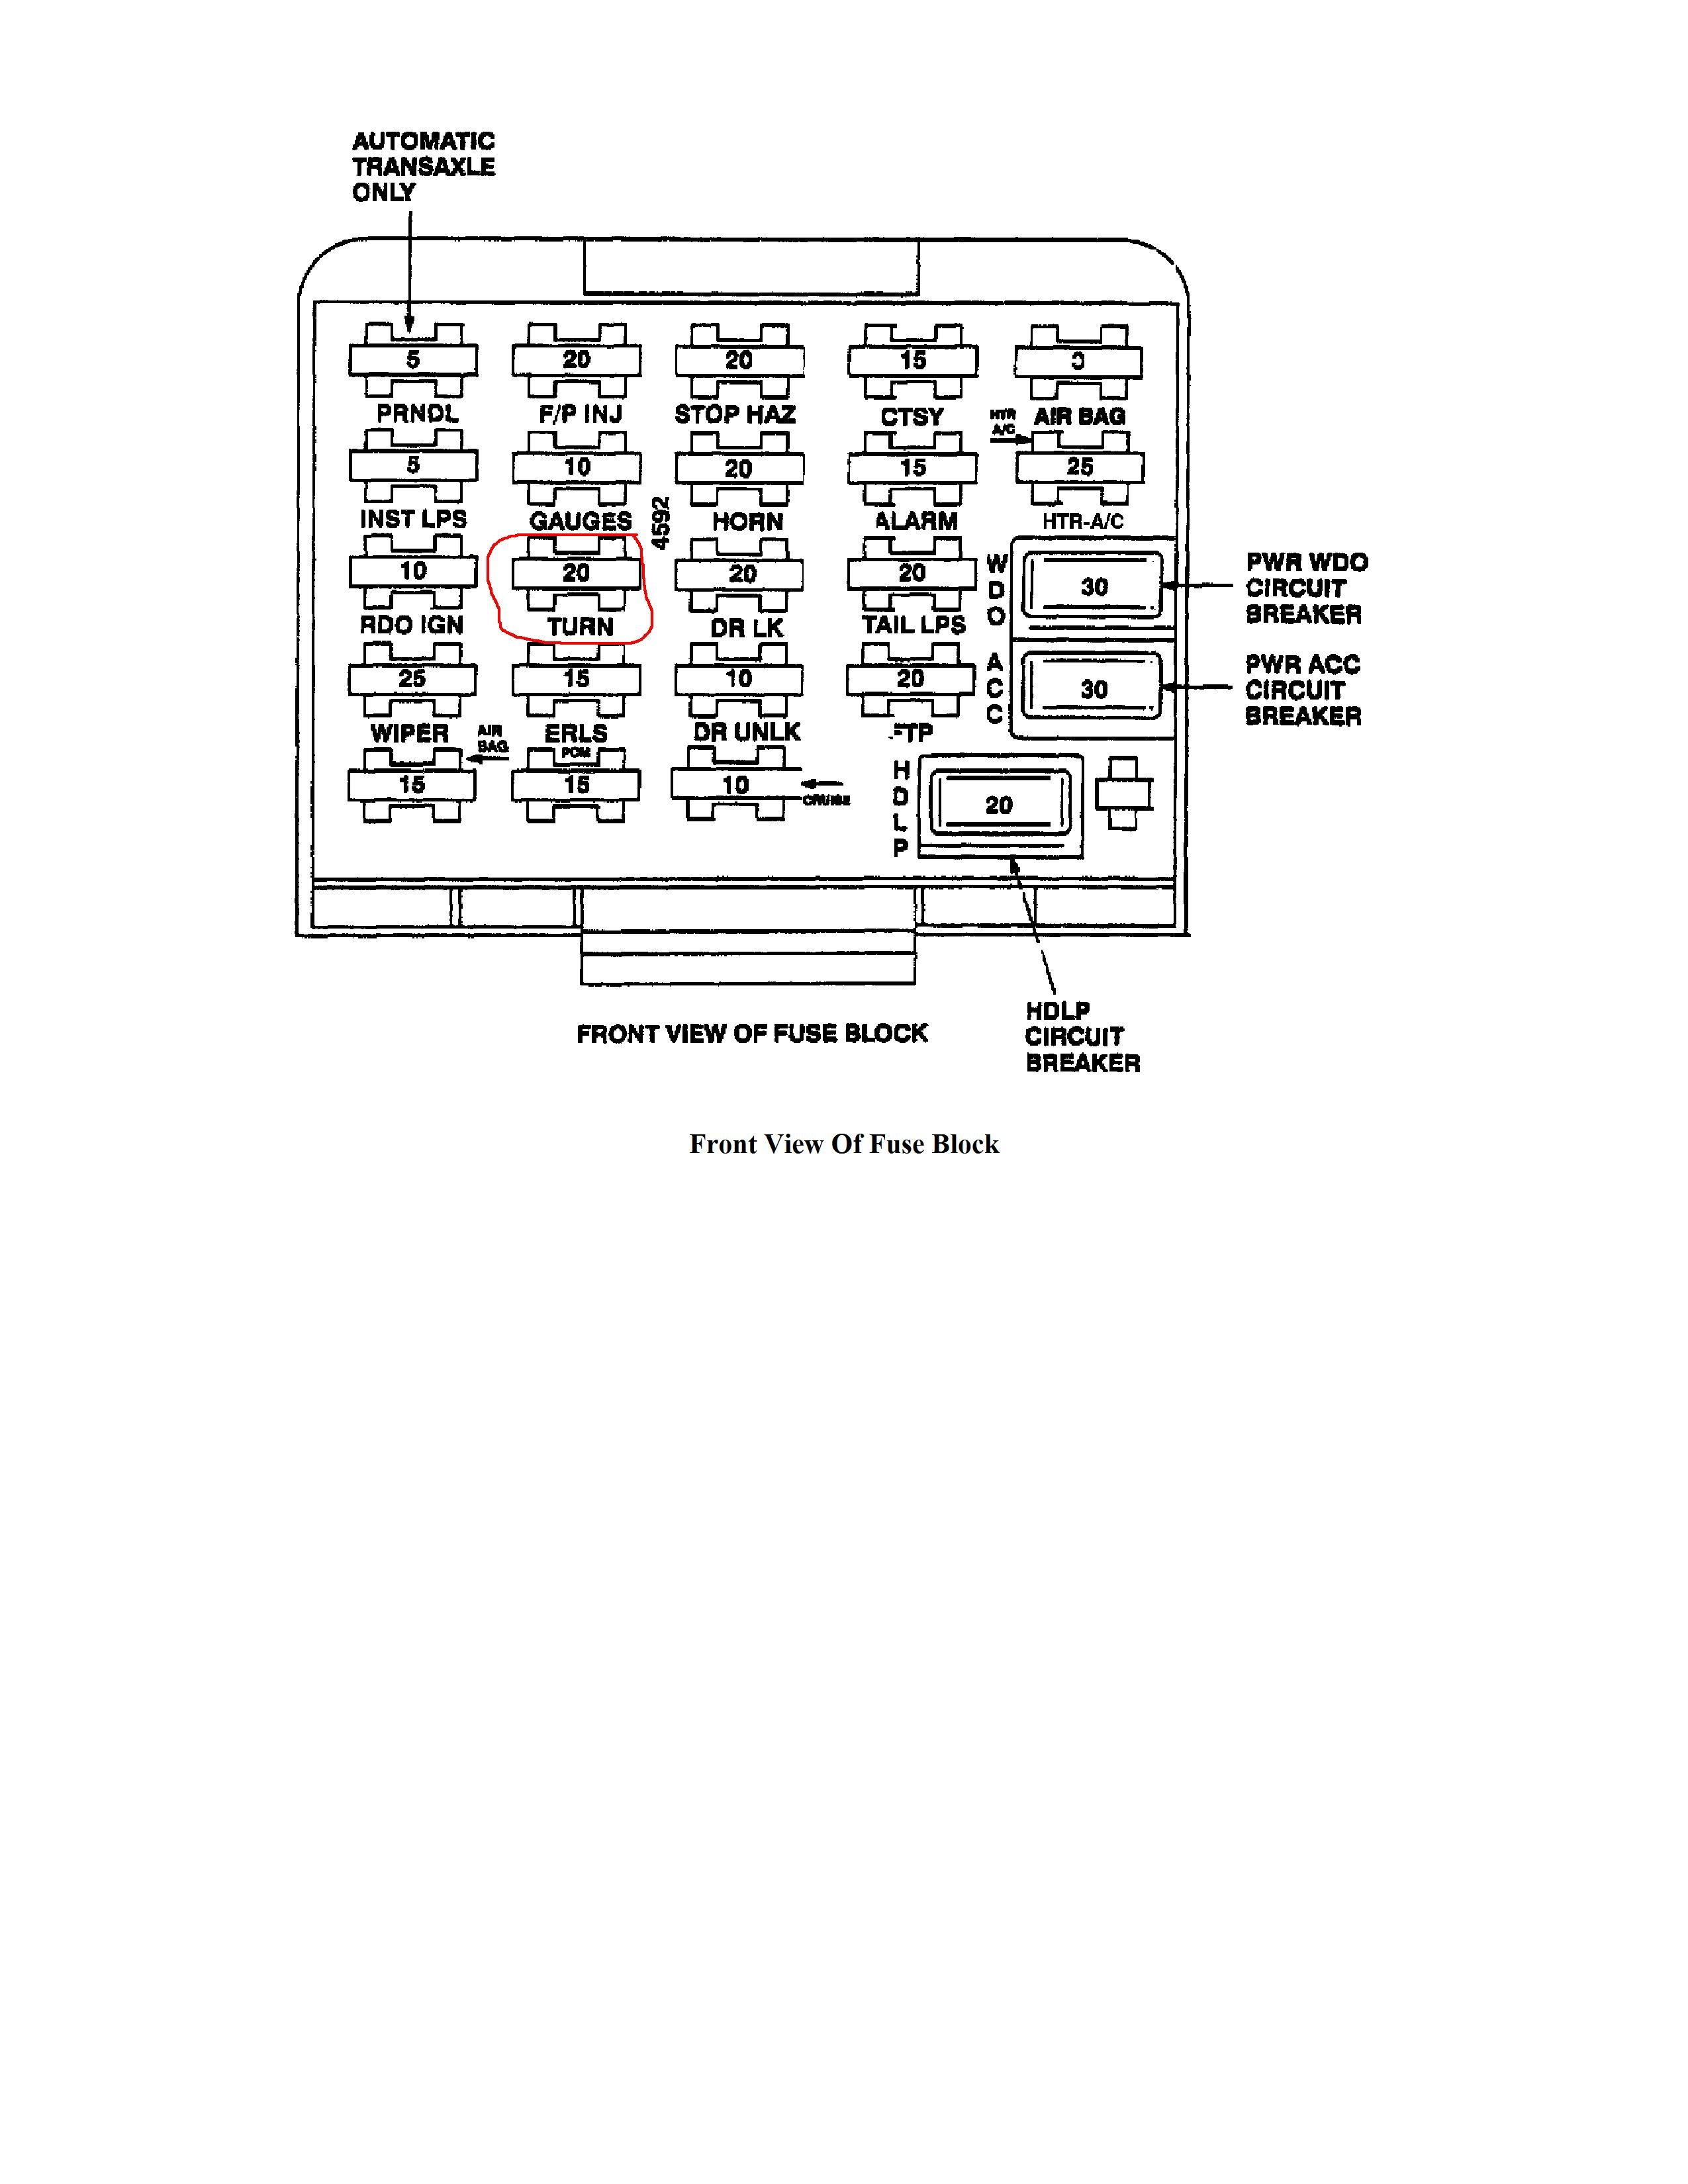 fuse diagram 95 grand prix